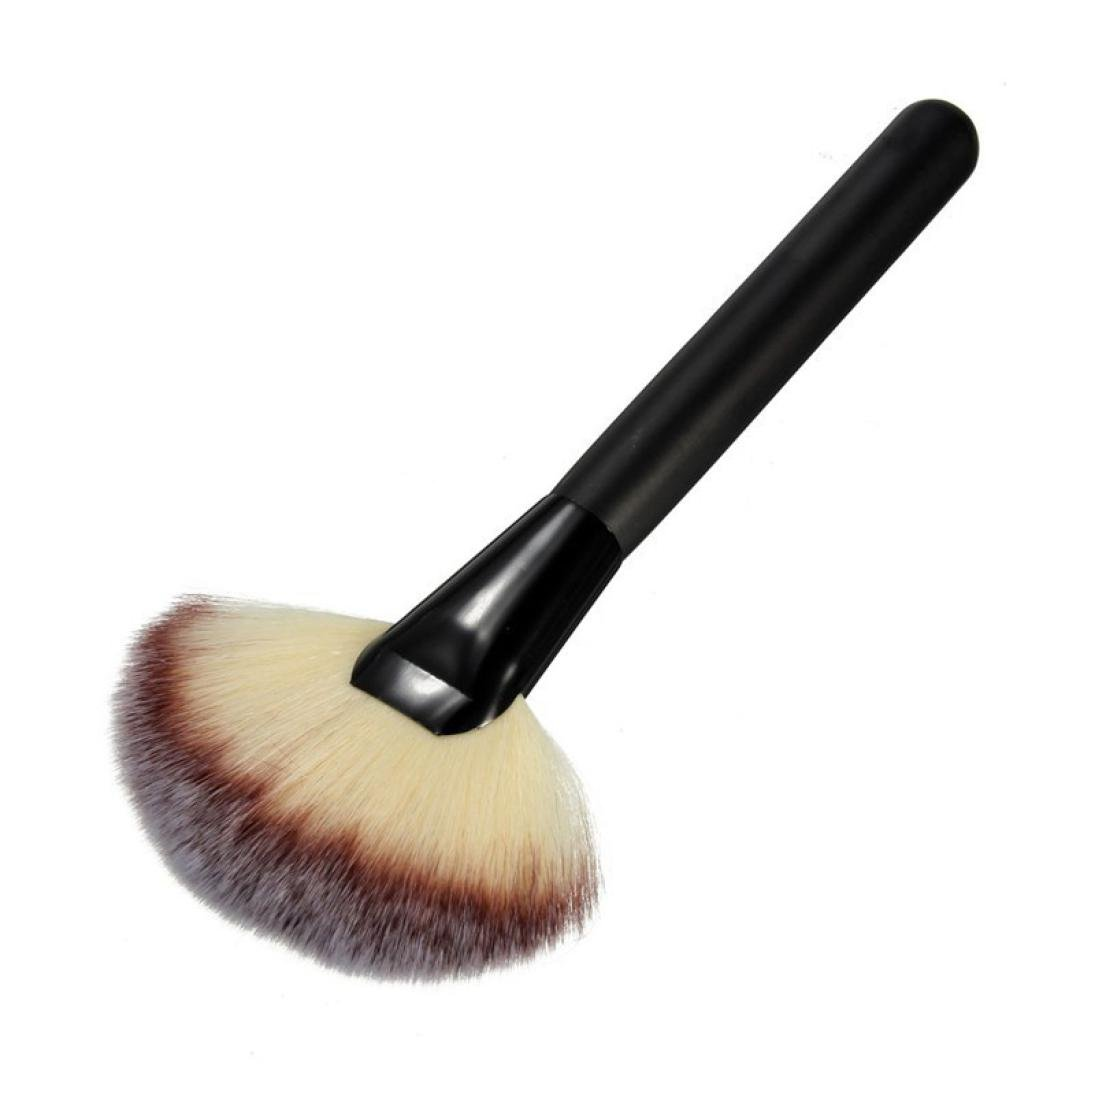 Ninasill Hot Makeup Large Fan Goat Hair Blush Face Powder Foundation Cosmetic Brush (Black)